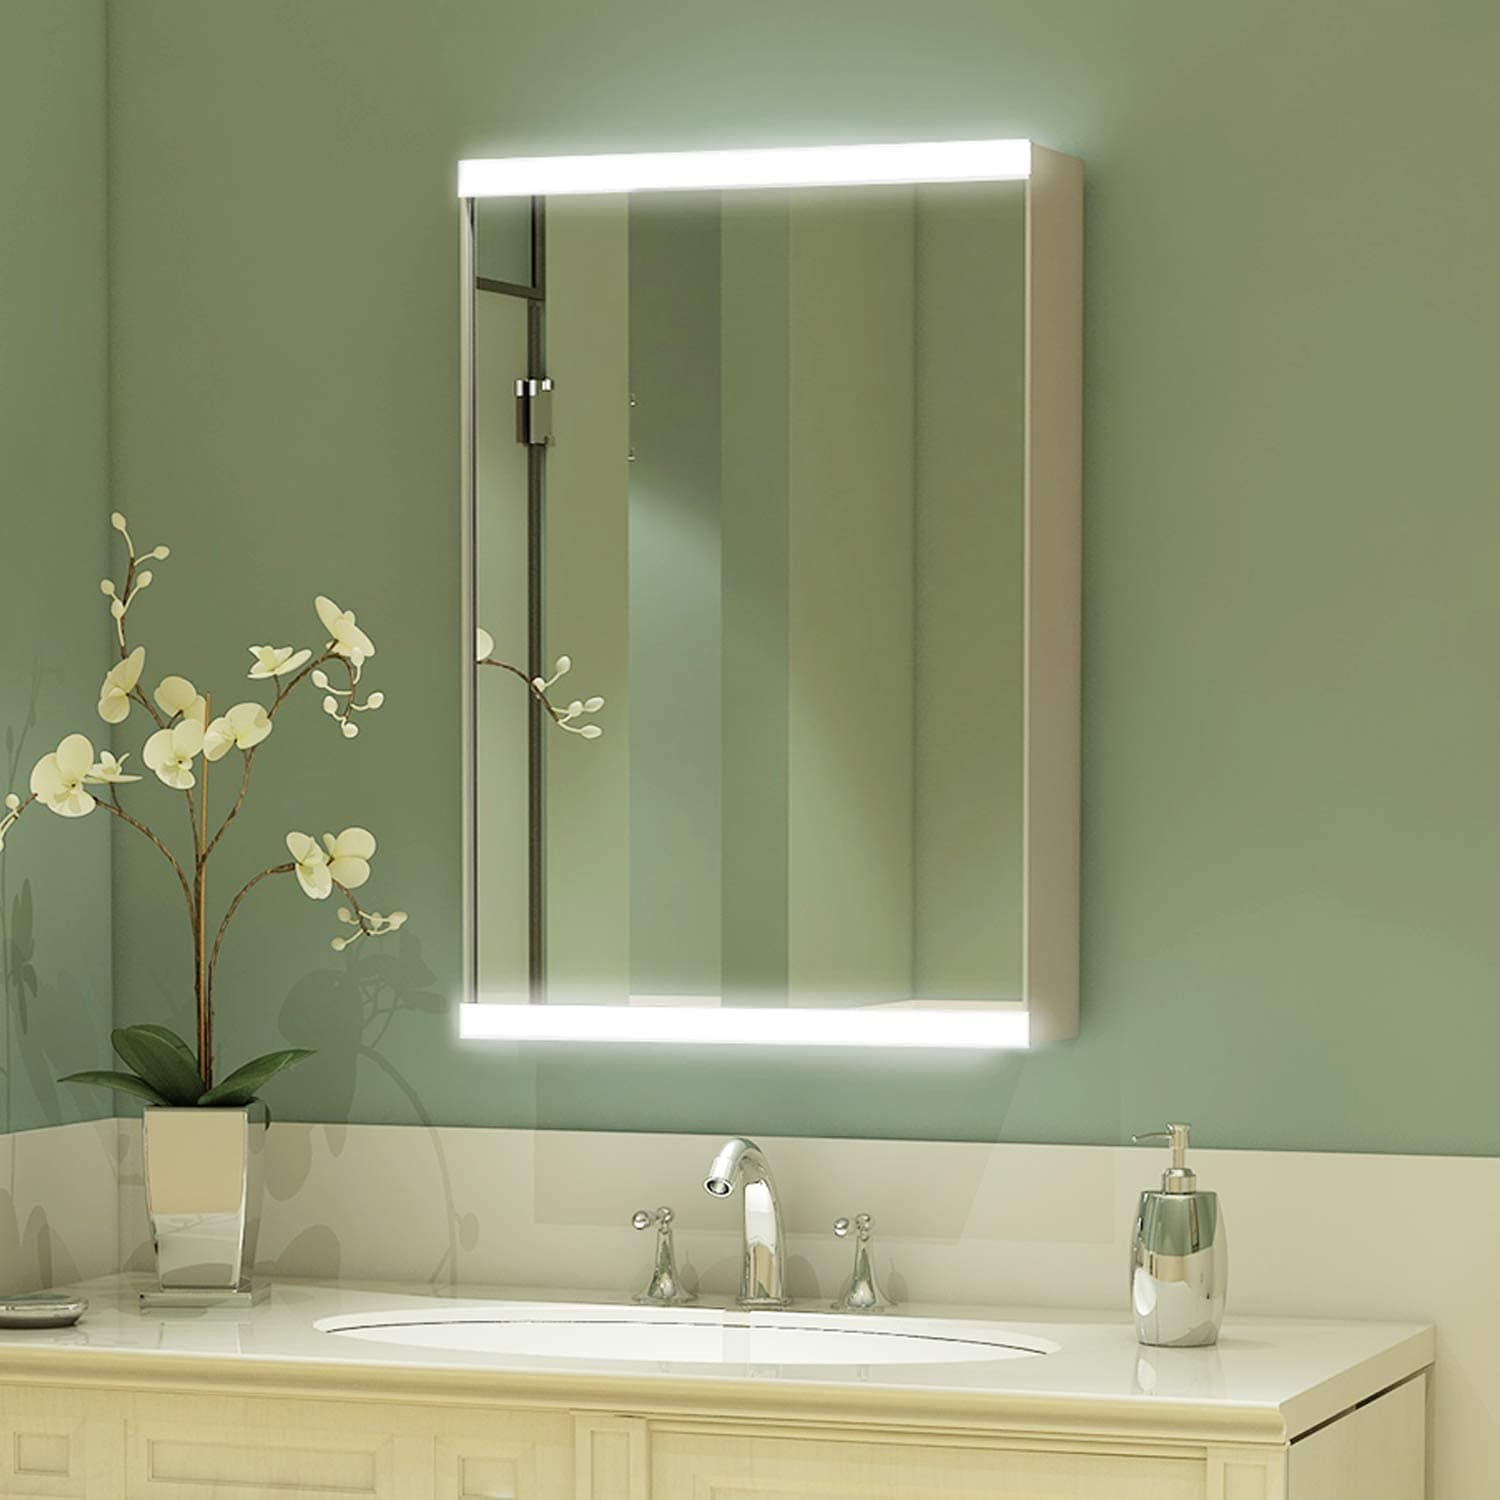 20 X 26 Led Bathroom Medicine Cabinet With Mirror Intelligent Switch Aluminum Frame Casement Door Surface Mounting Only Overstock 31806688